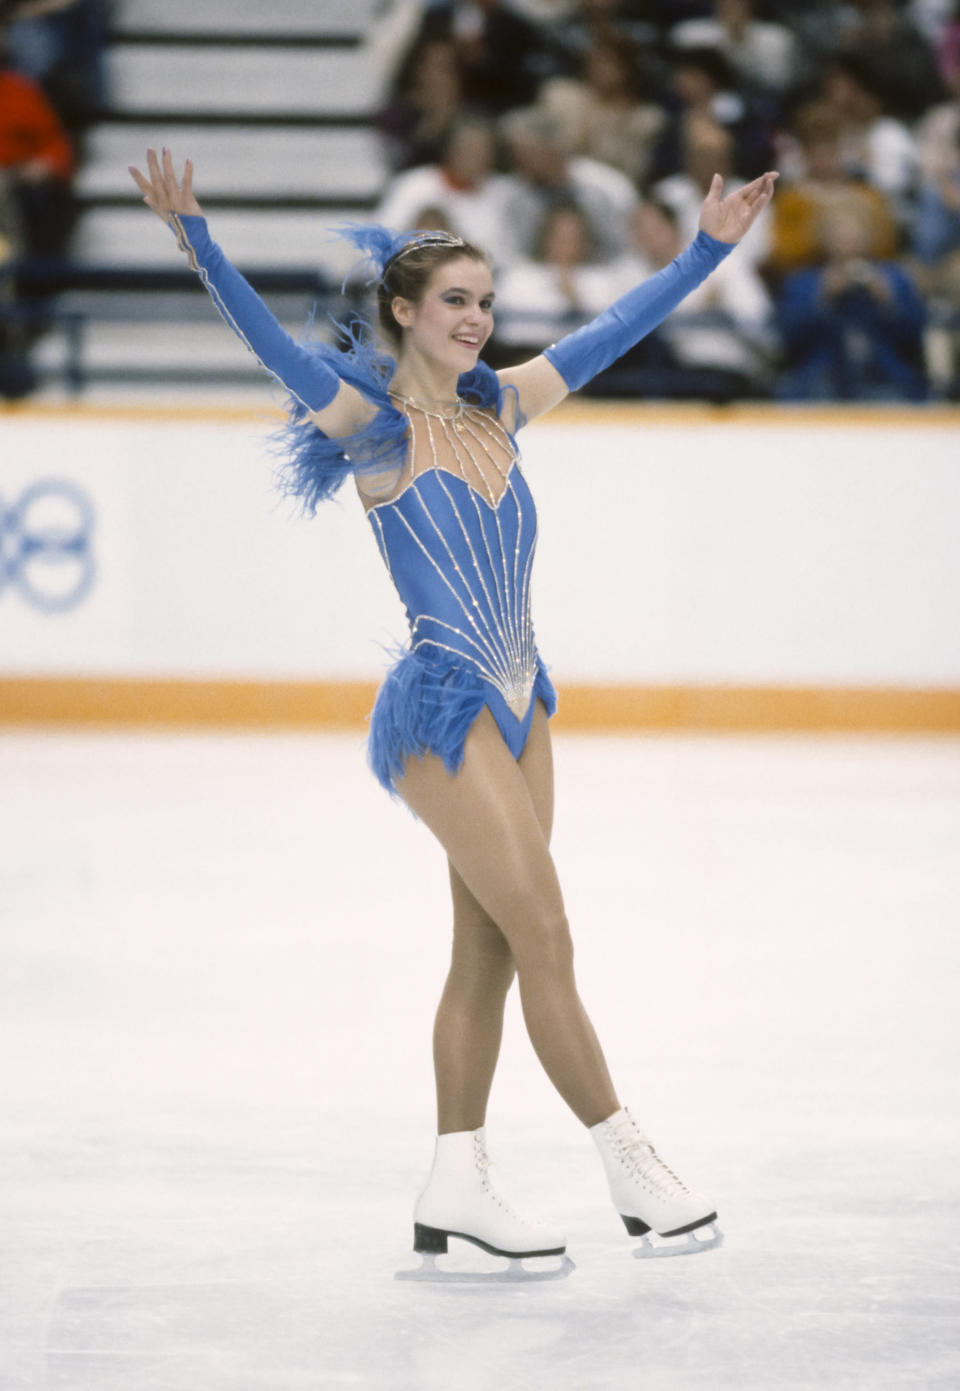 Katarina Witt in the 1988 Calgary Olympics, sporting the blue dress that sparked the so-called Katarina Rule. (Photo: David Madison/Getty Images)